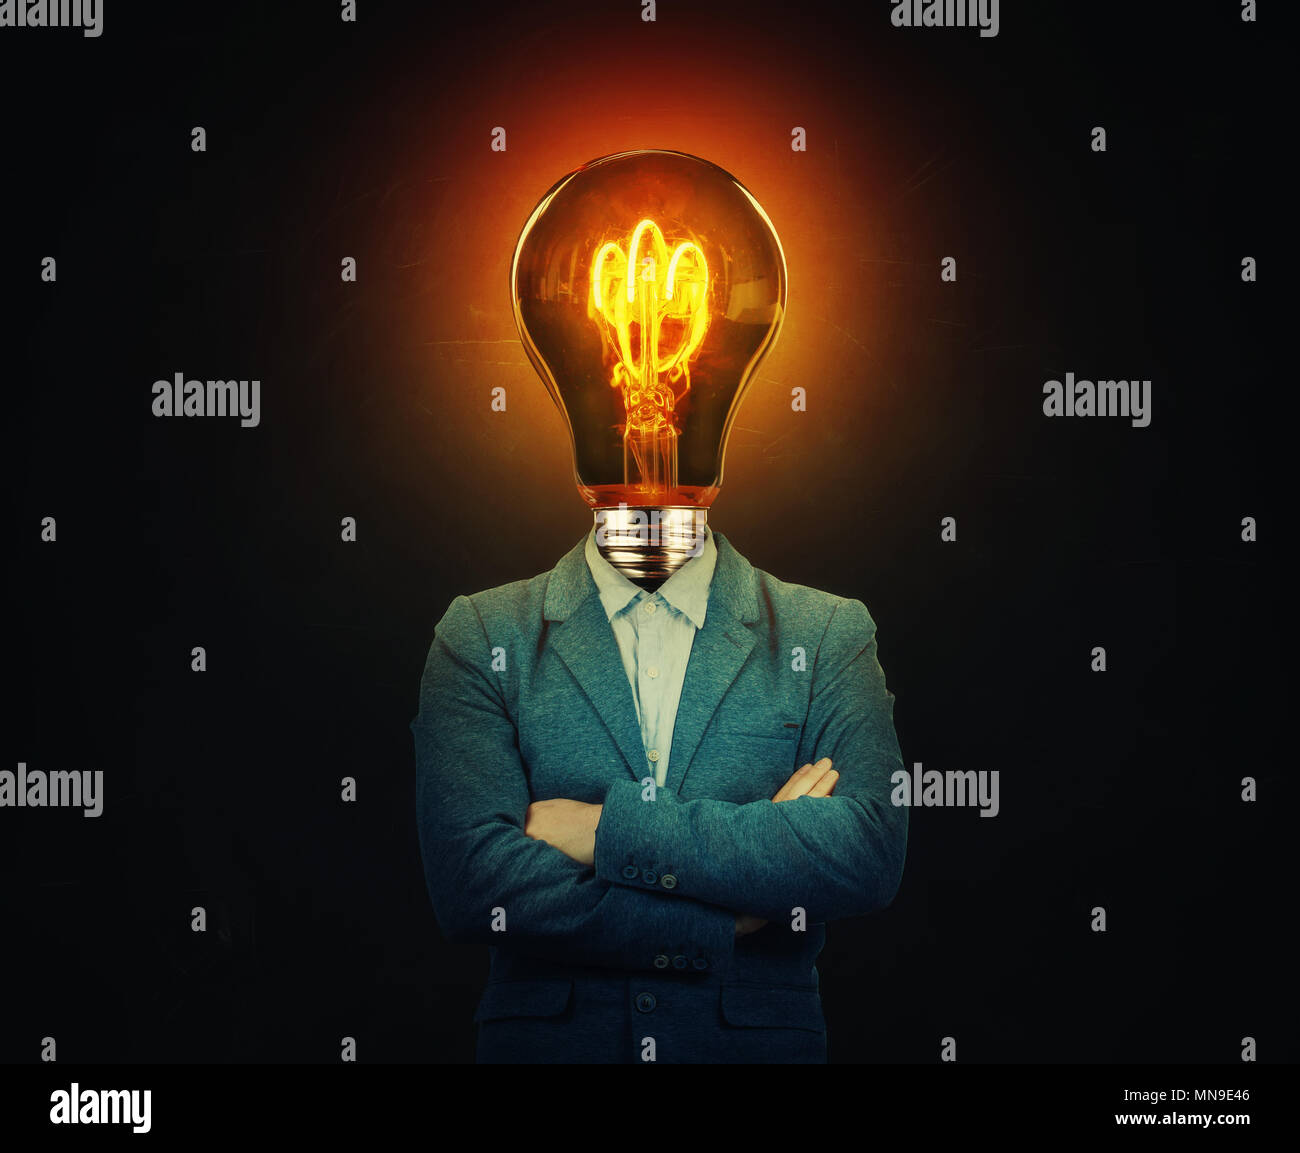 Surreal image as a serious businessman with a bulb instead of his head with crossed hands over black background. Business idea and creativity symbol. - Stock Image